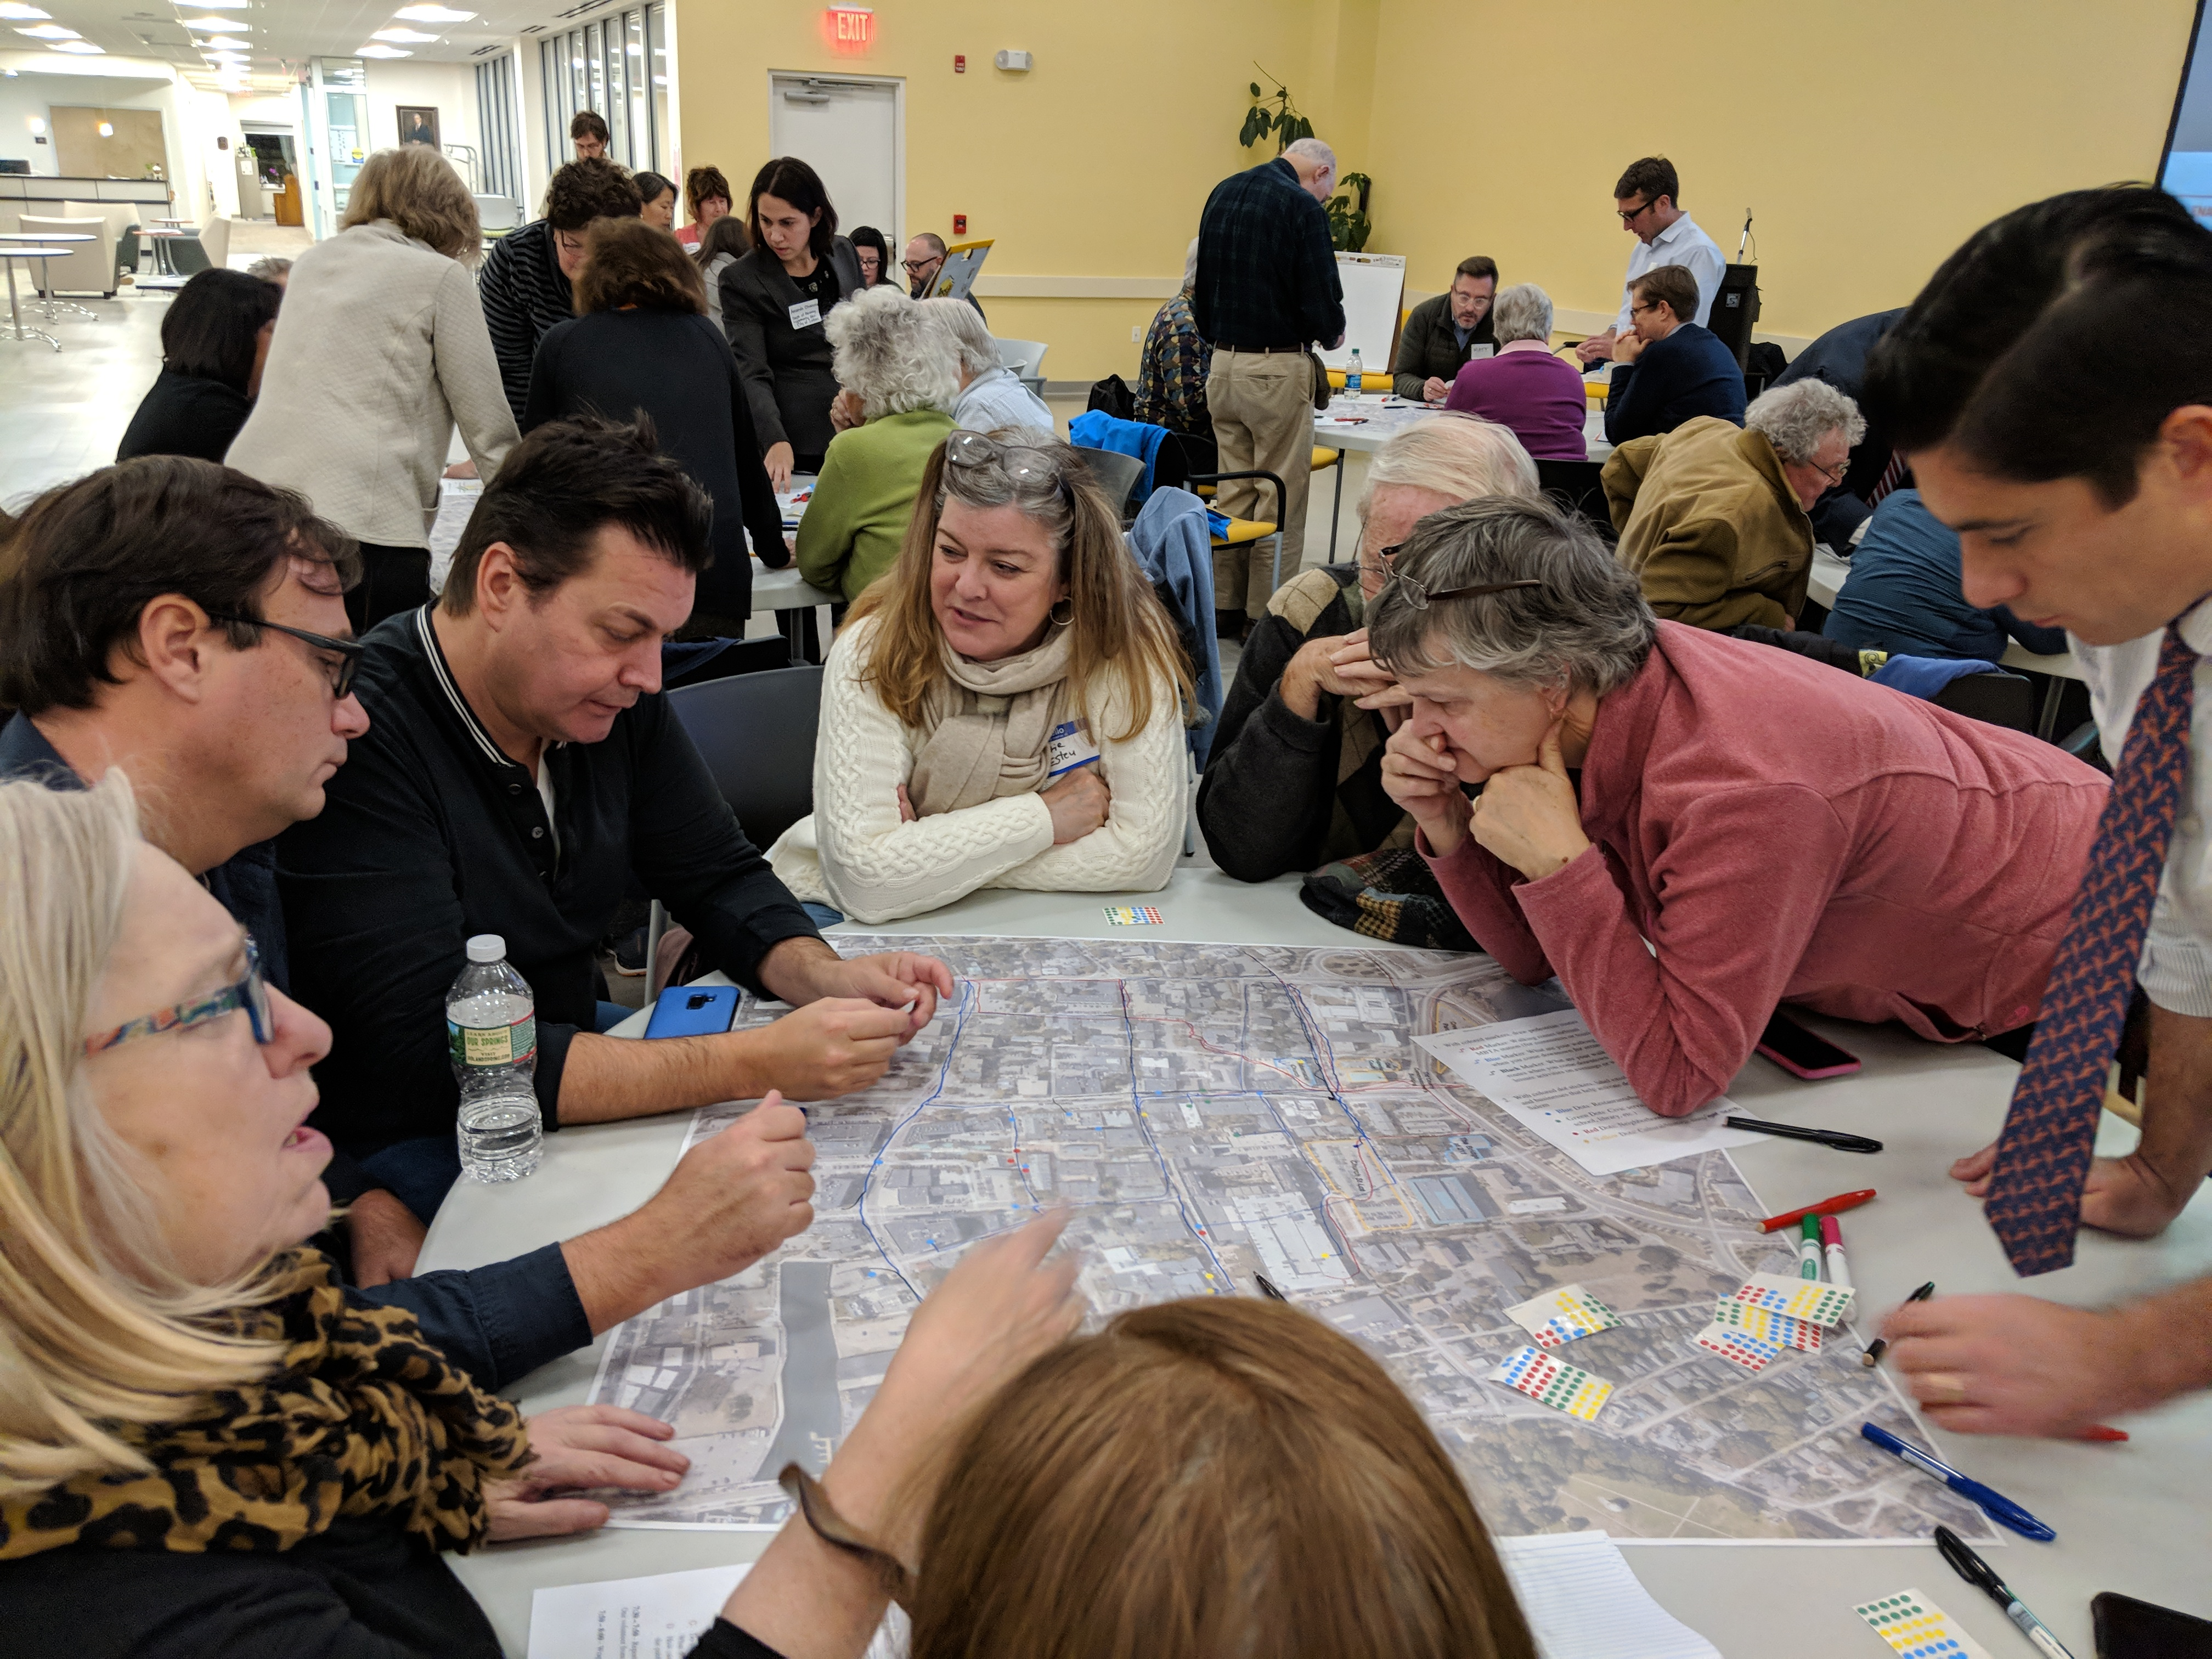 Utile's civic engagement process highlighted in Salem, MA press